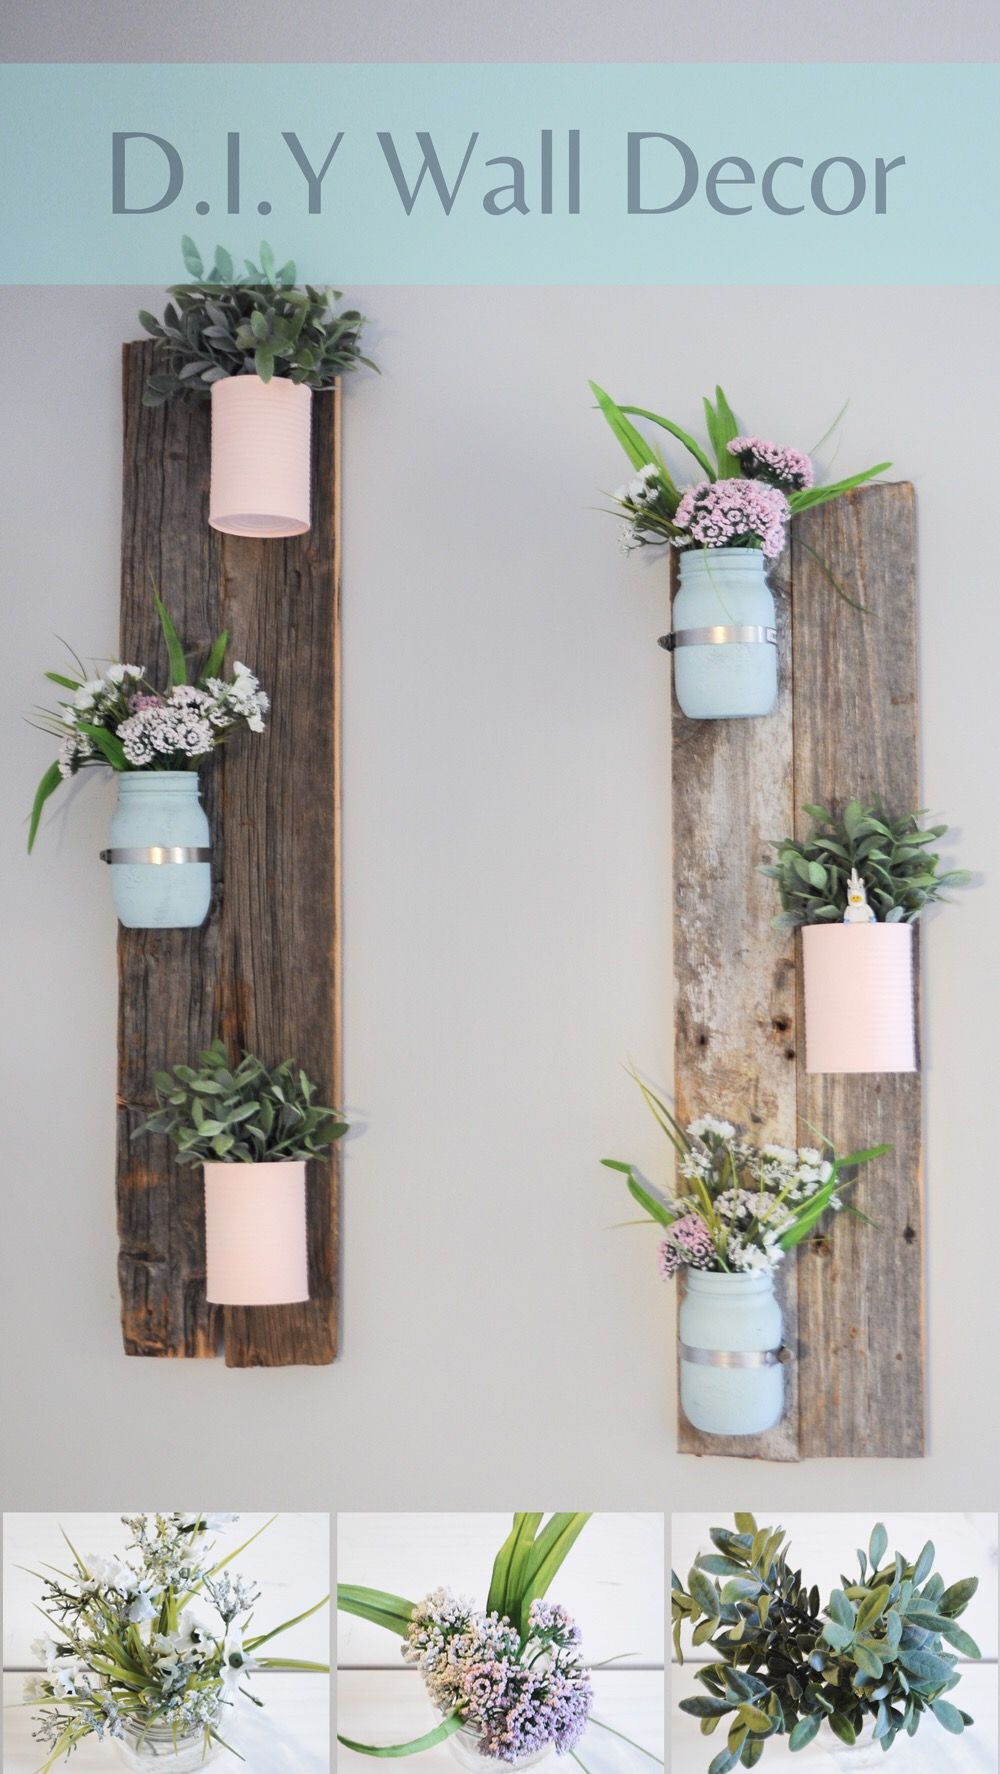 Wooden Home Decor Wood Signs Easy Projects For Kids Buy Online Shops Near Me Unique Accessories